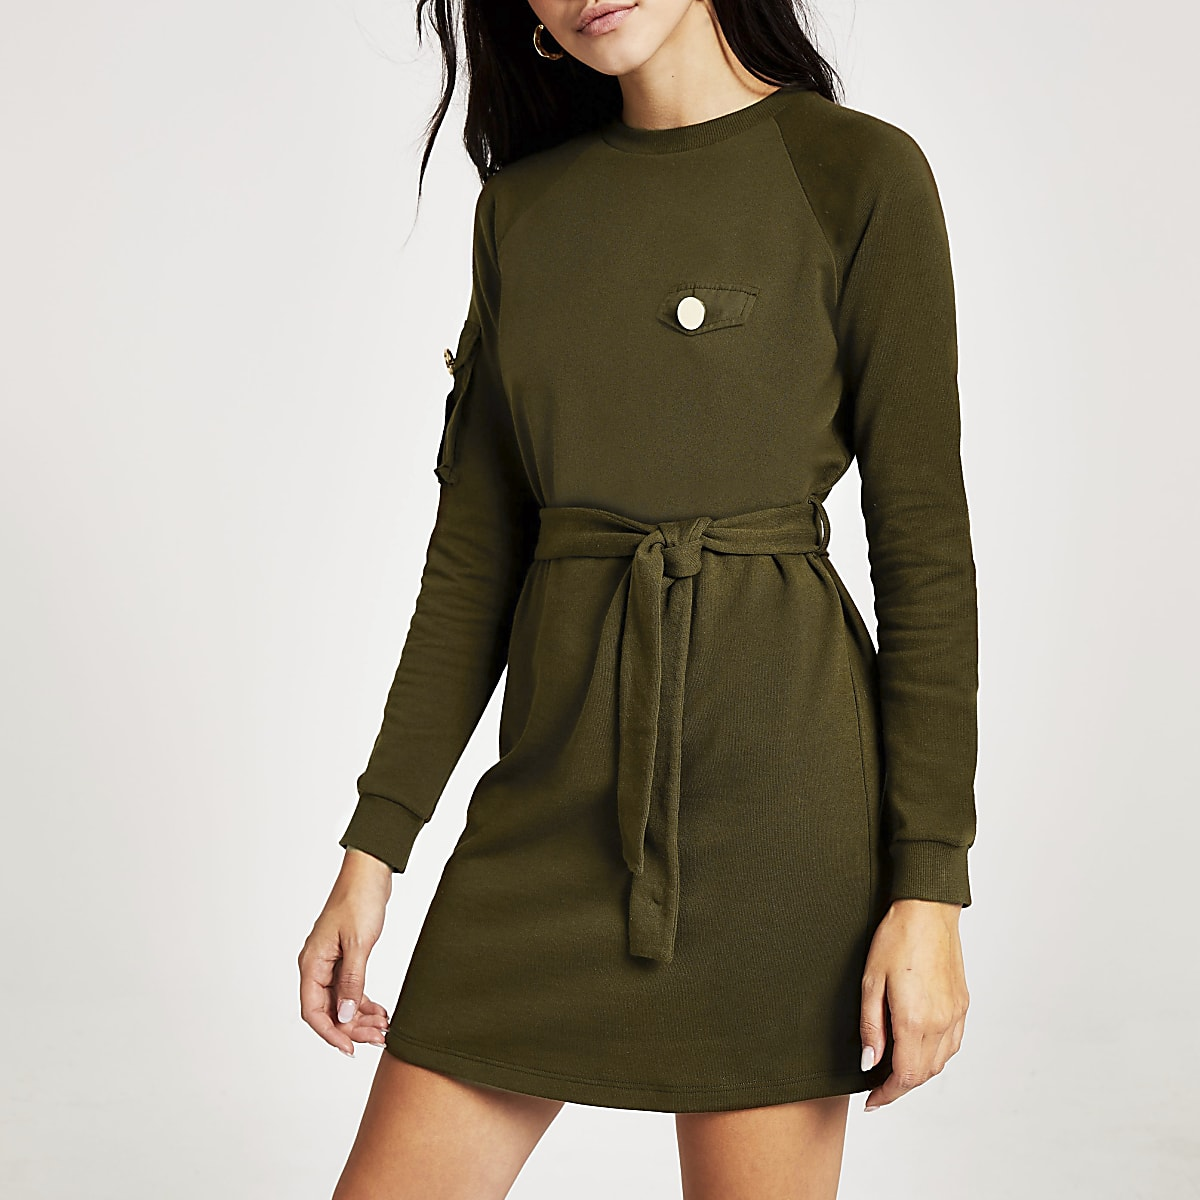 Khaki tie waist utility sweatshirt dress